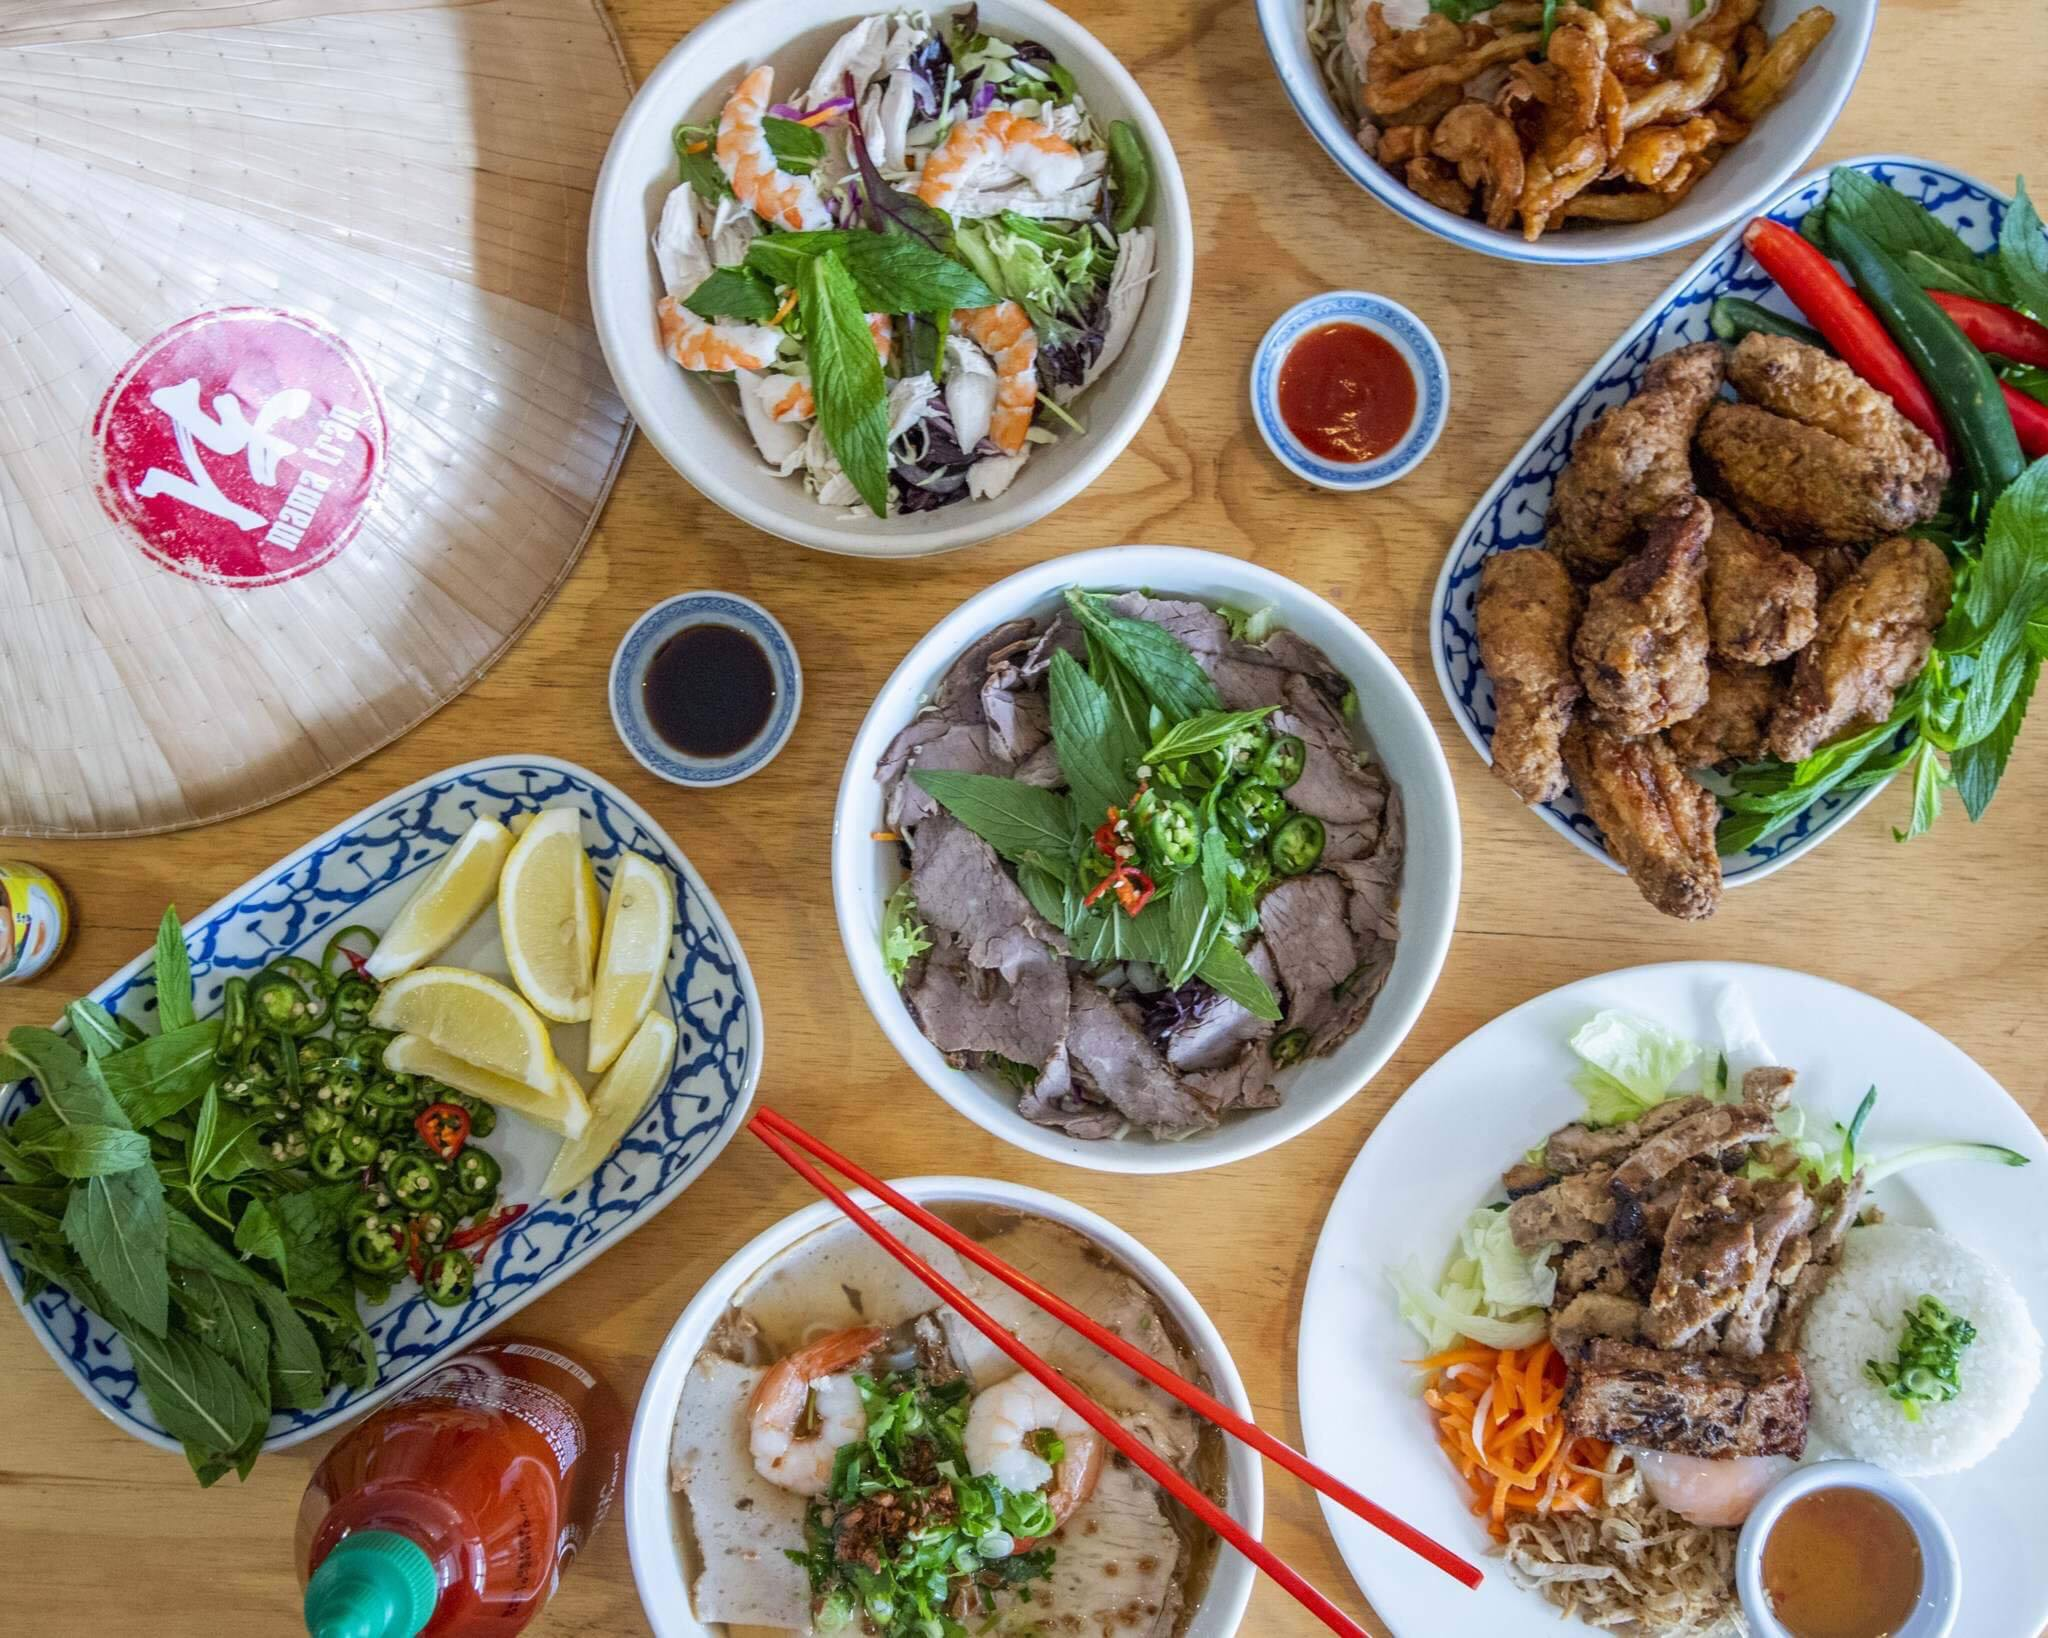 A spread of dishes from Mama Tran